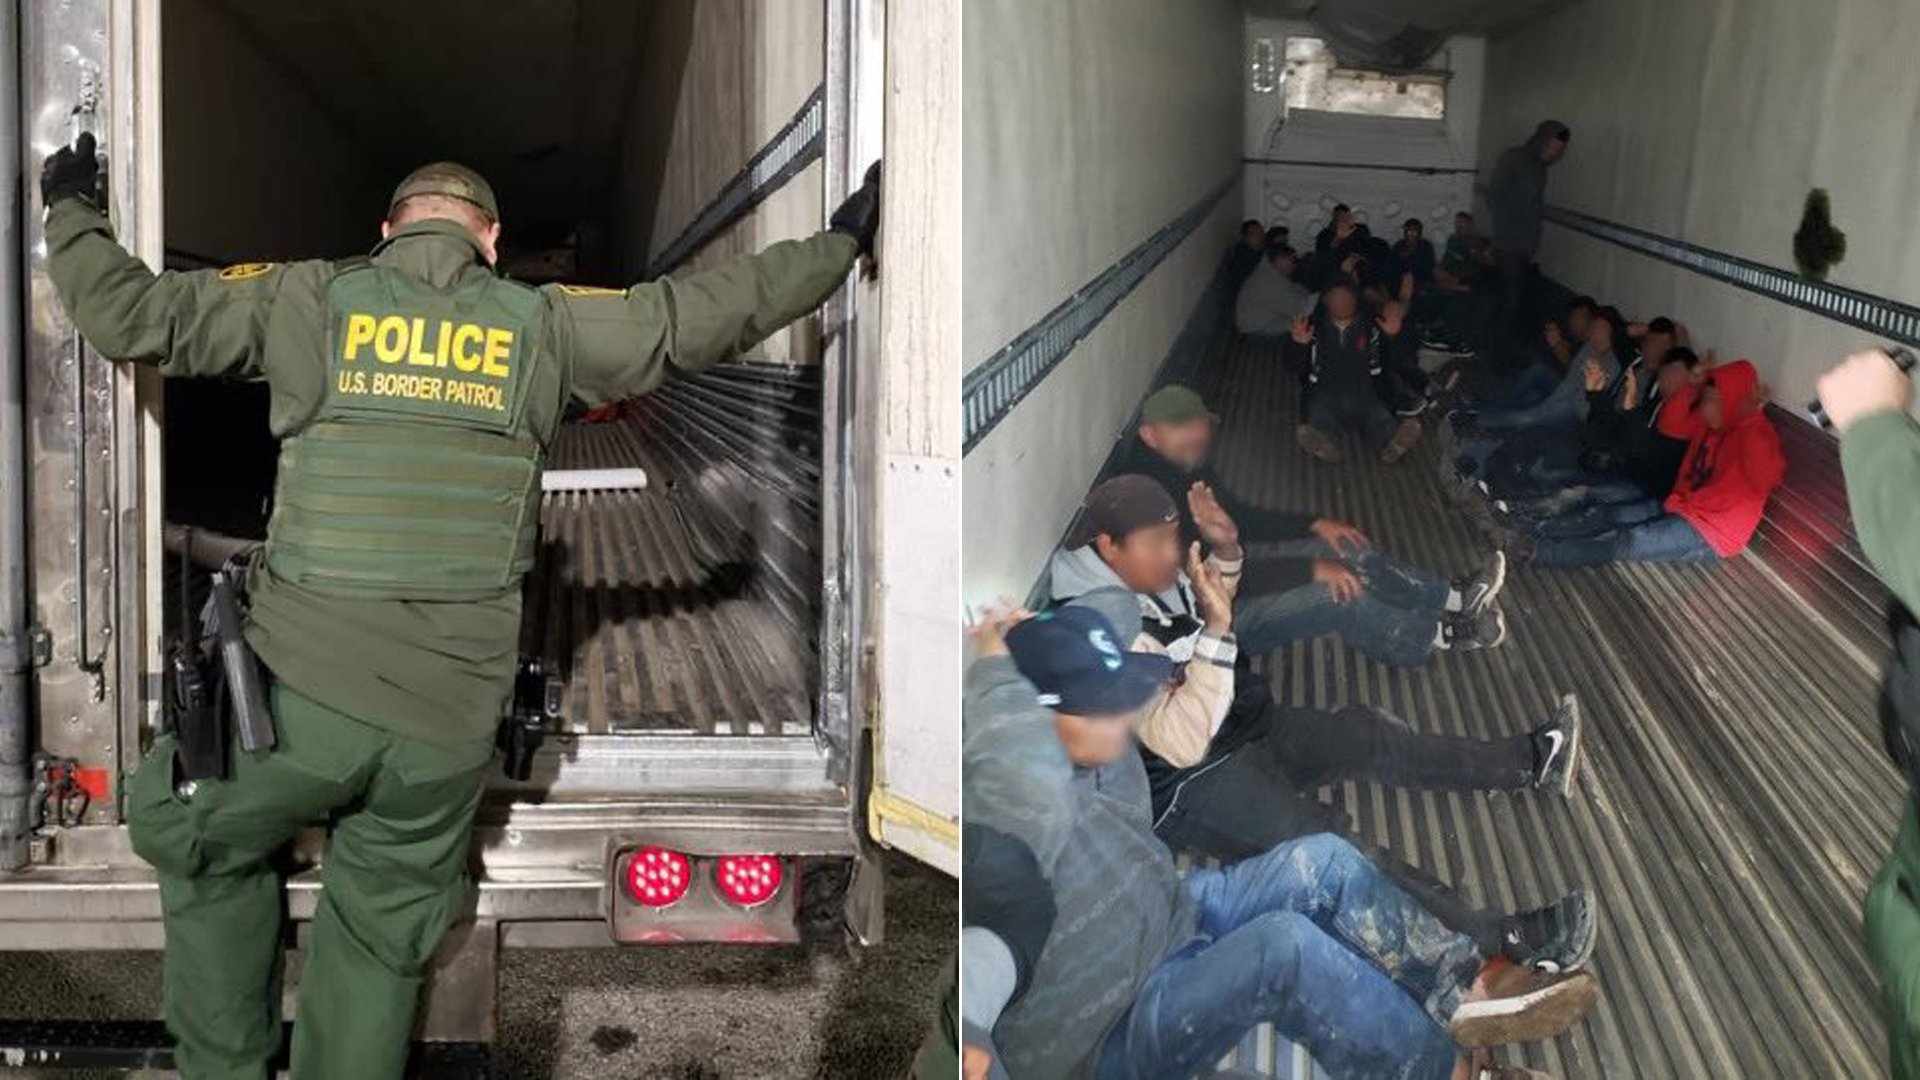 Dozens of people, including 2 children, were found traveling in a big rig trailer near the Salton Sea on Feb. 12, 2020. (Credit: U.S. Customs and Border Protection)